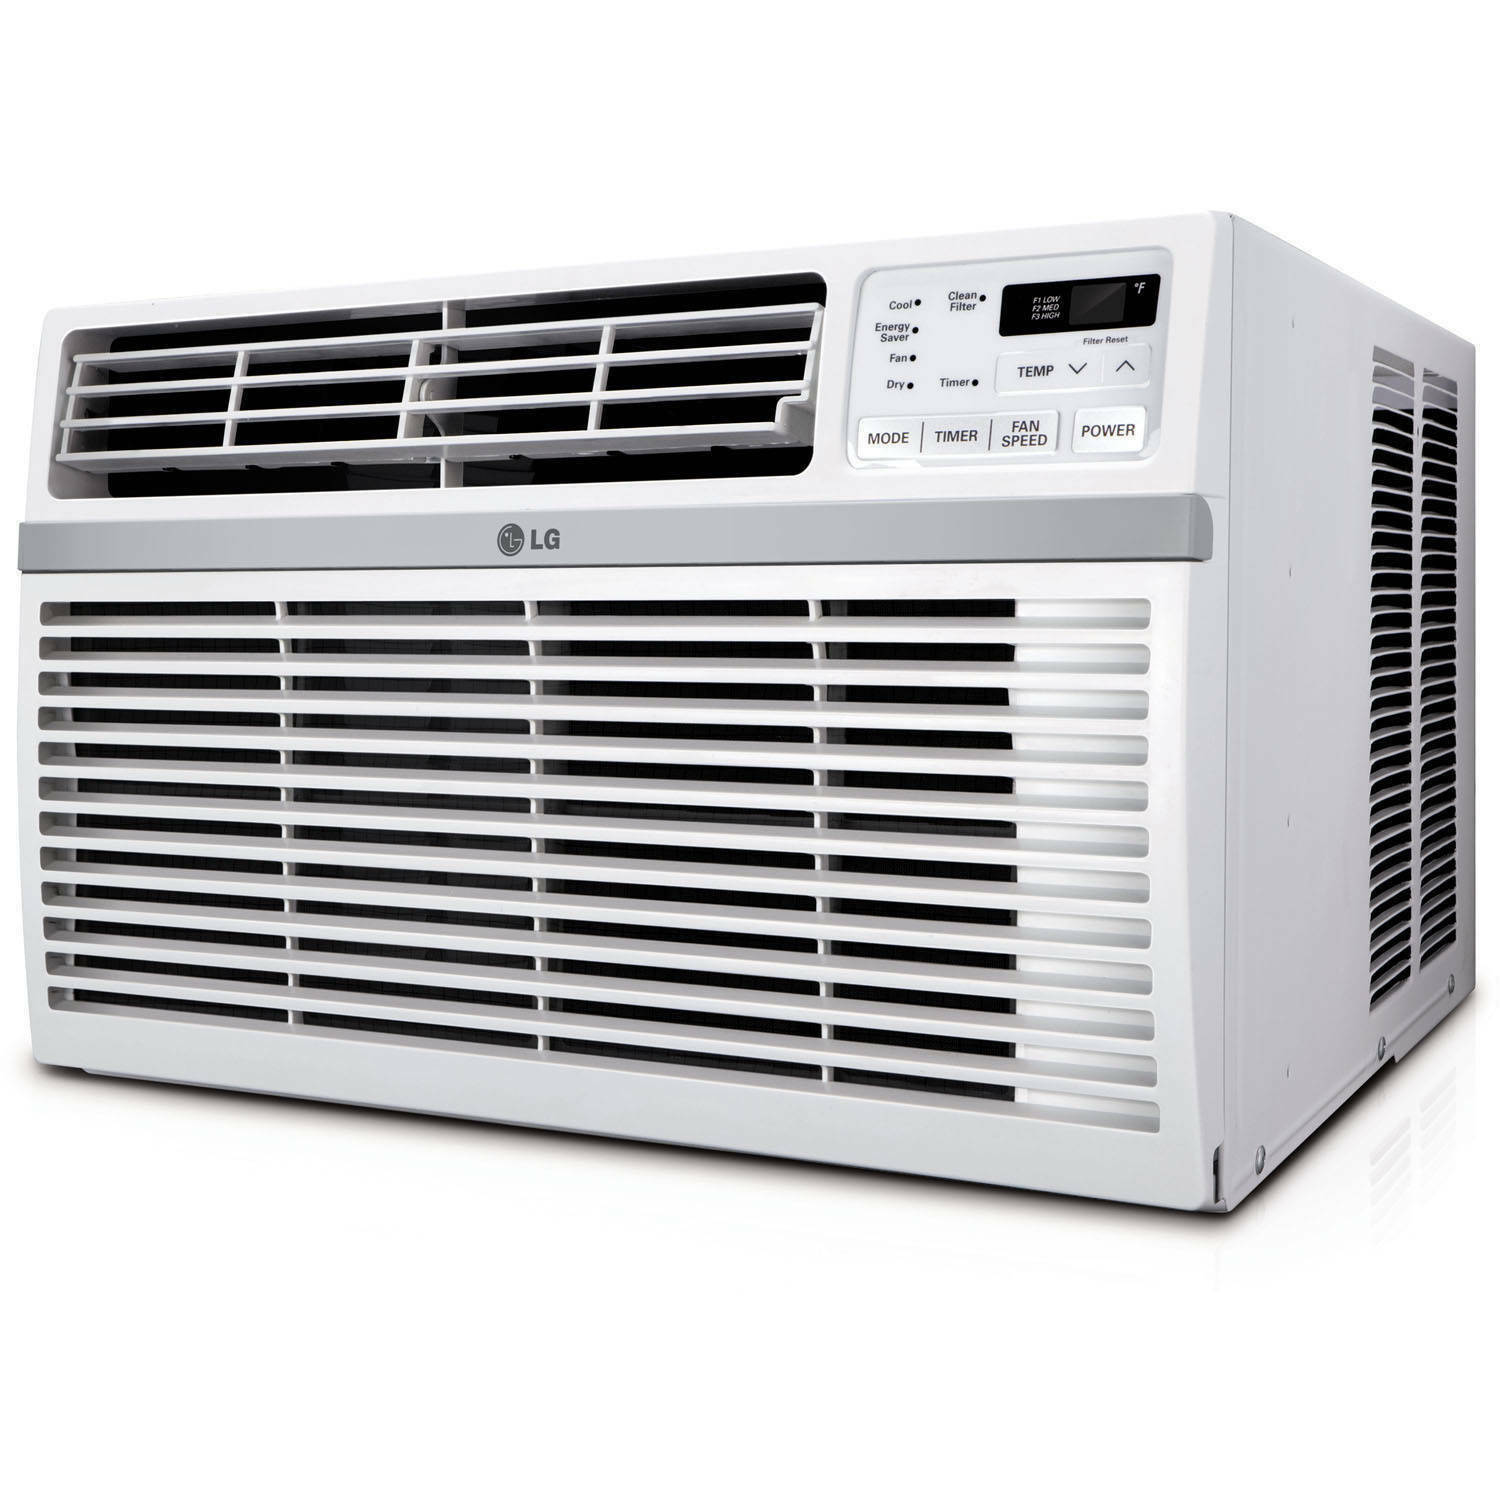 LG LW2516ER 24,500 BTU 230V Window-Mounted AIR Conditioner w